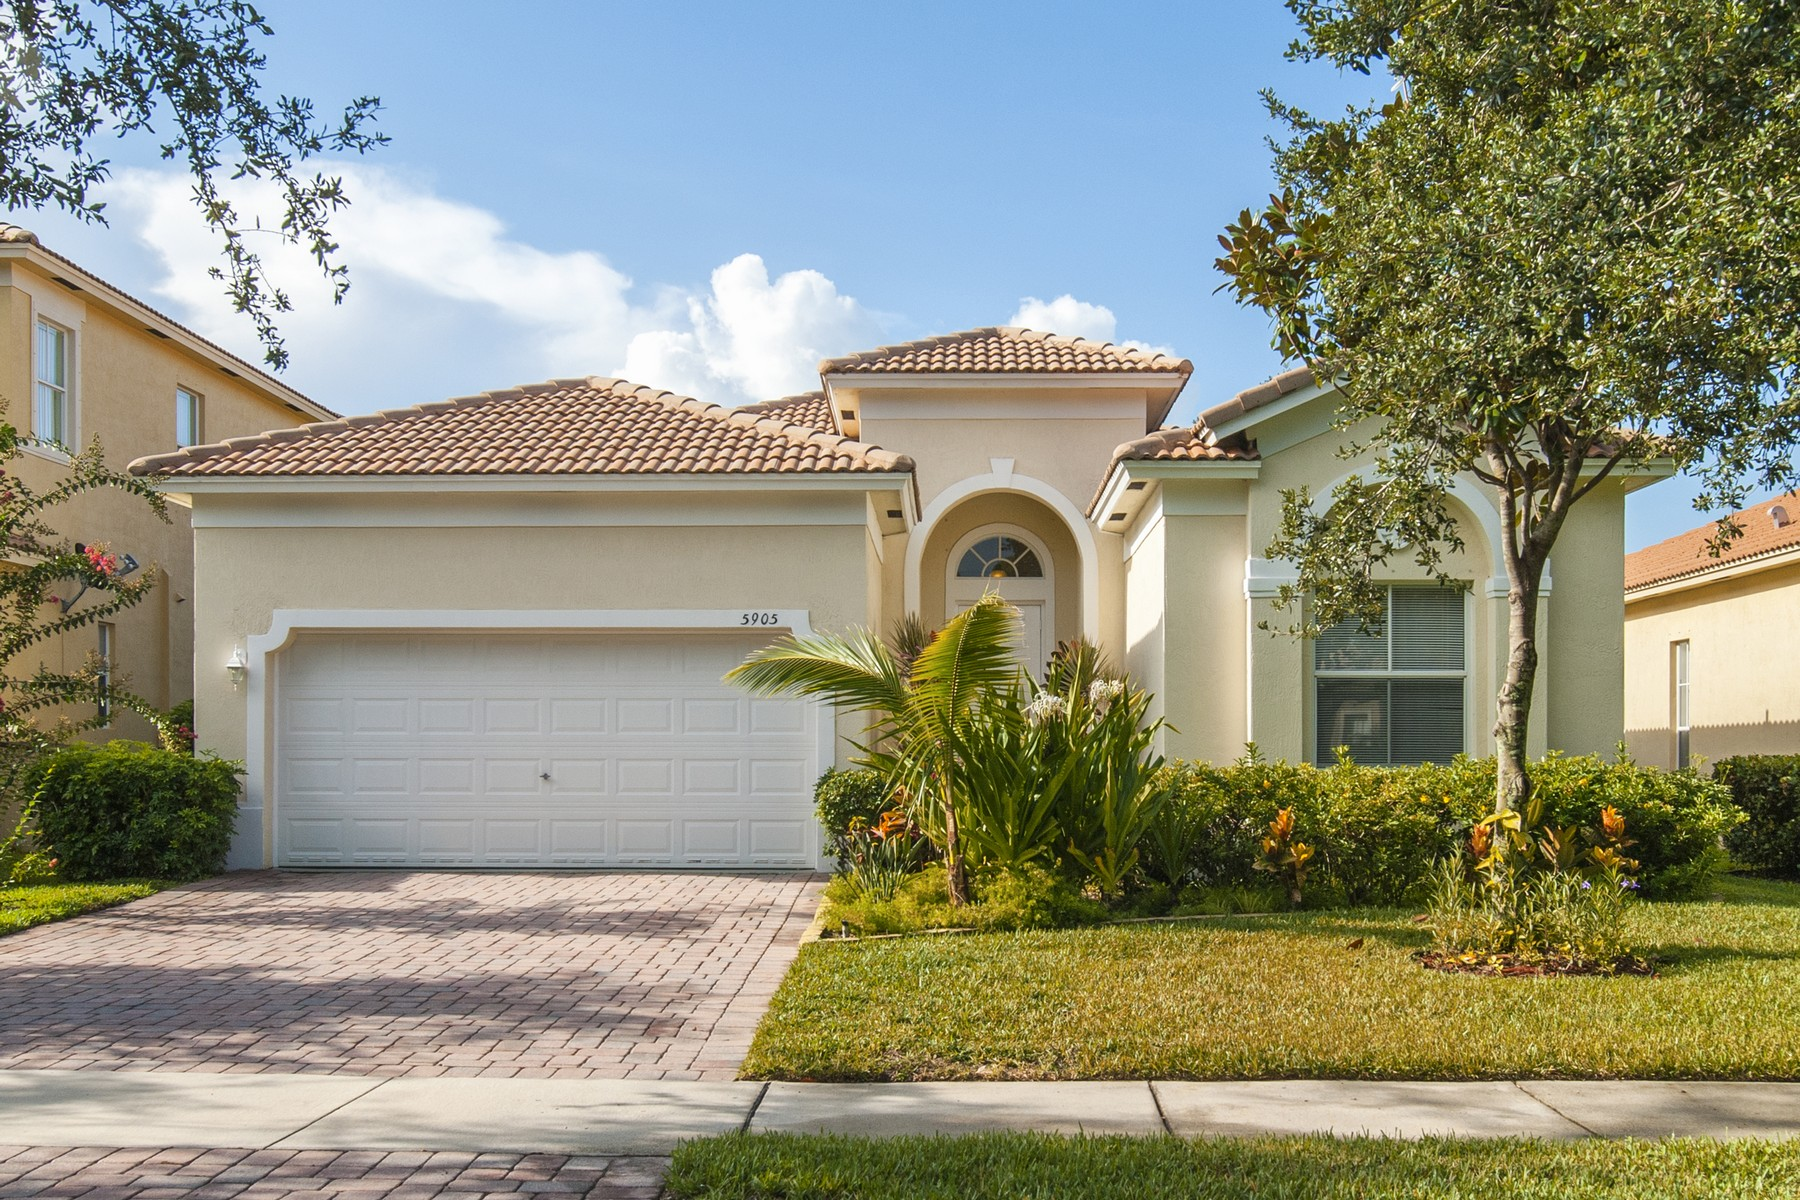 Beautfully Maintained Home in Resort Style Gated Community 5905 Spring Lake Terrace Fort Pierce, Florida 34951 Amerika Birleşik Devletleri